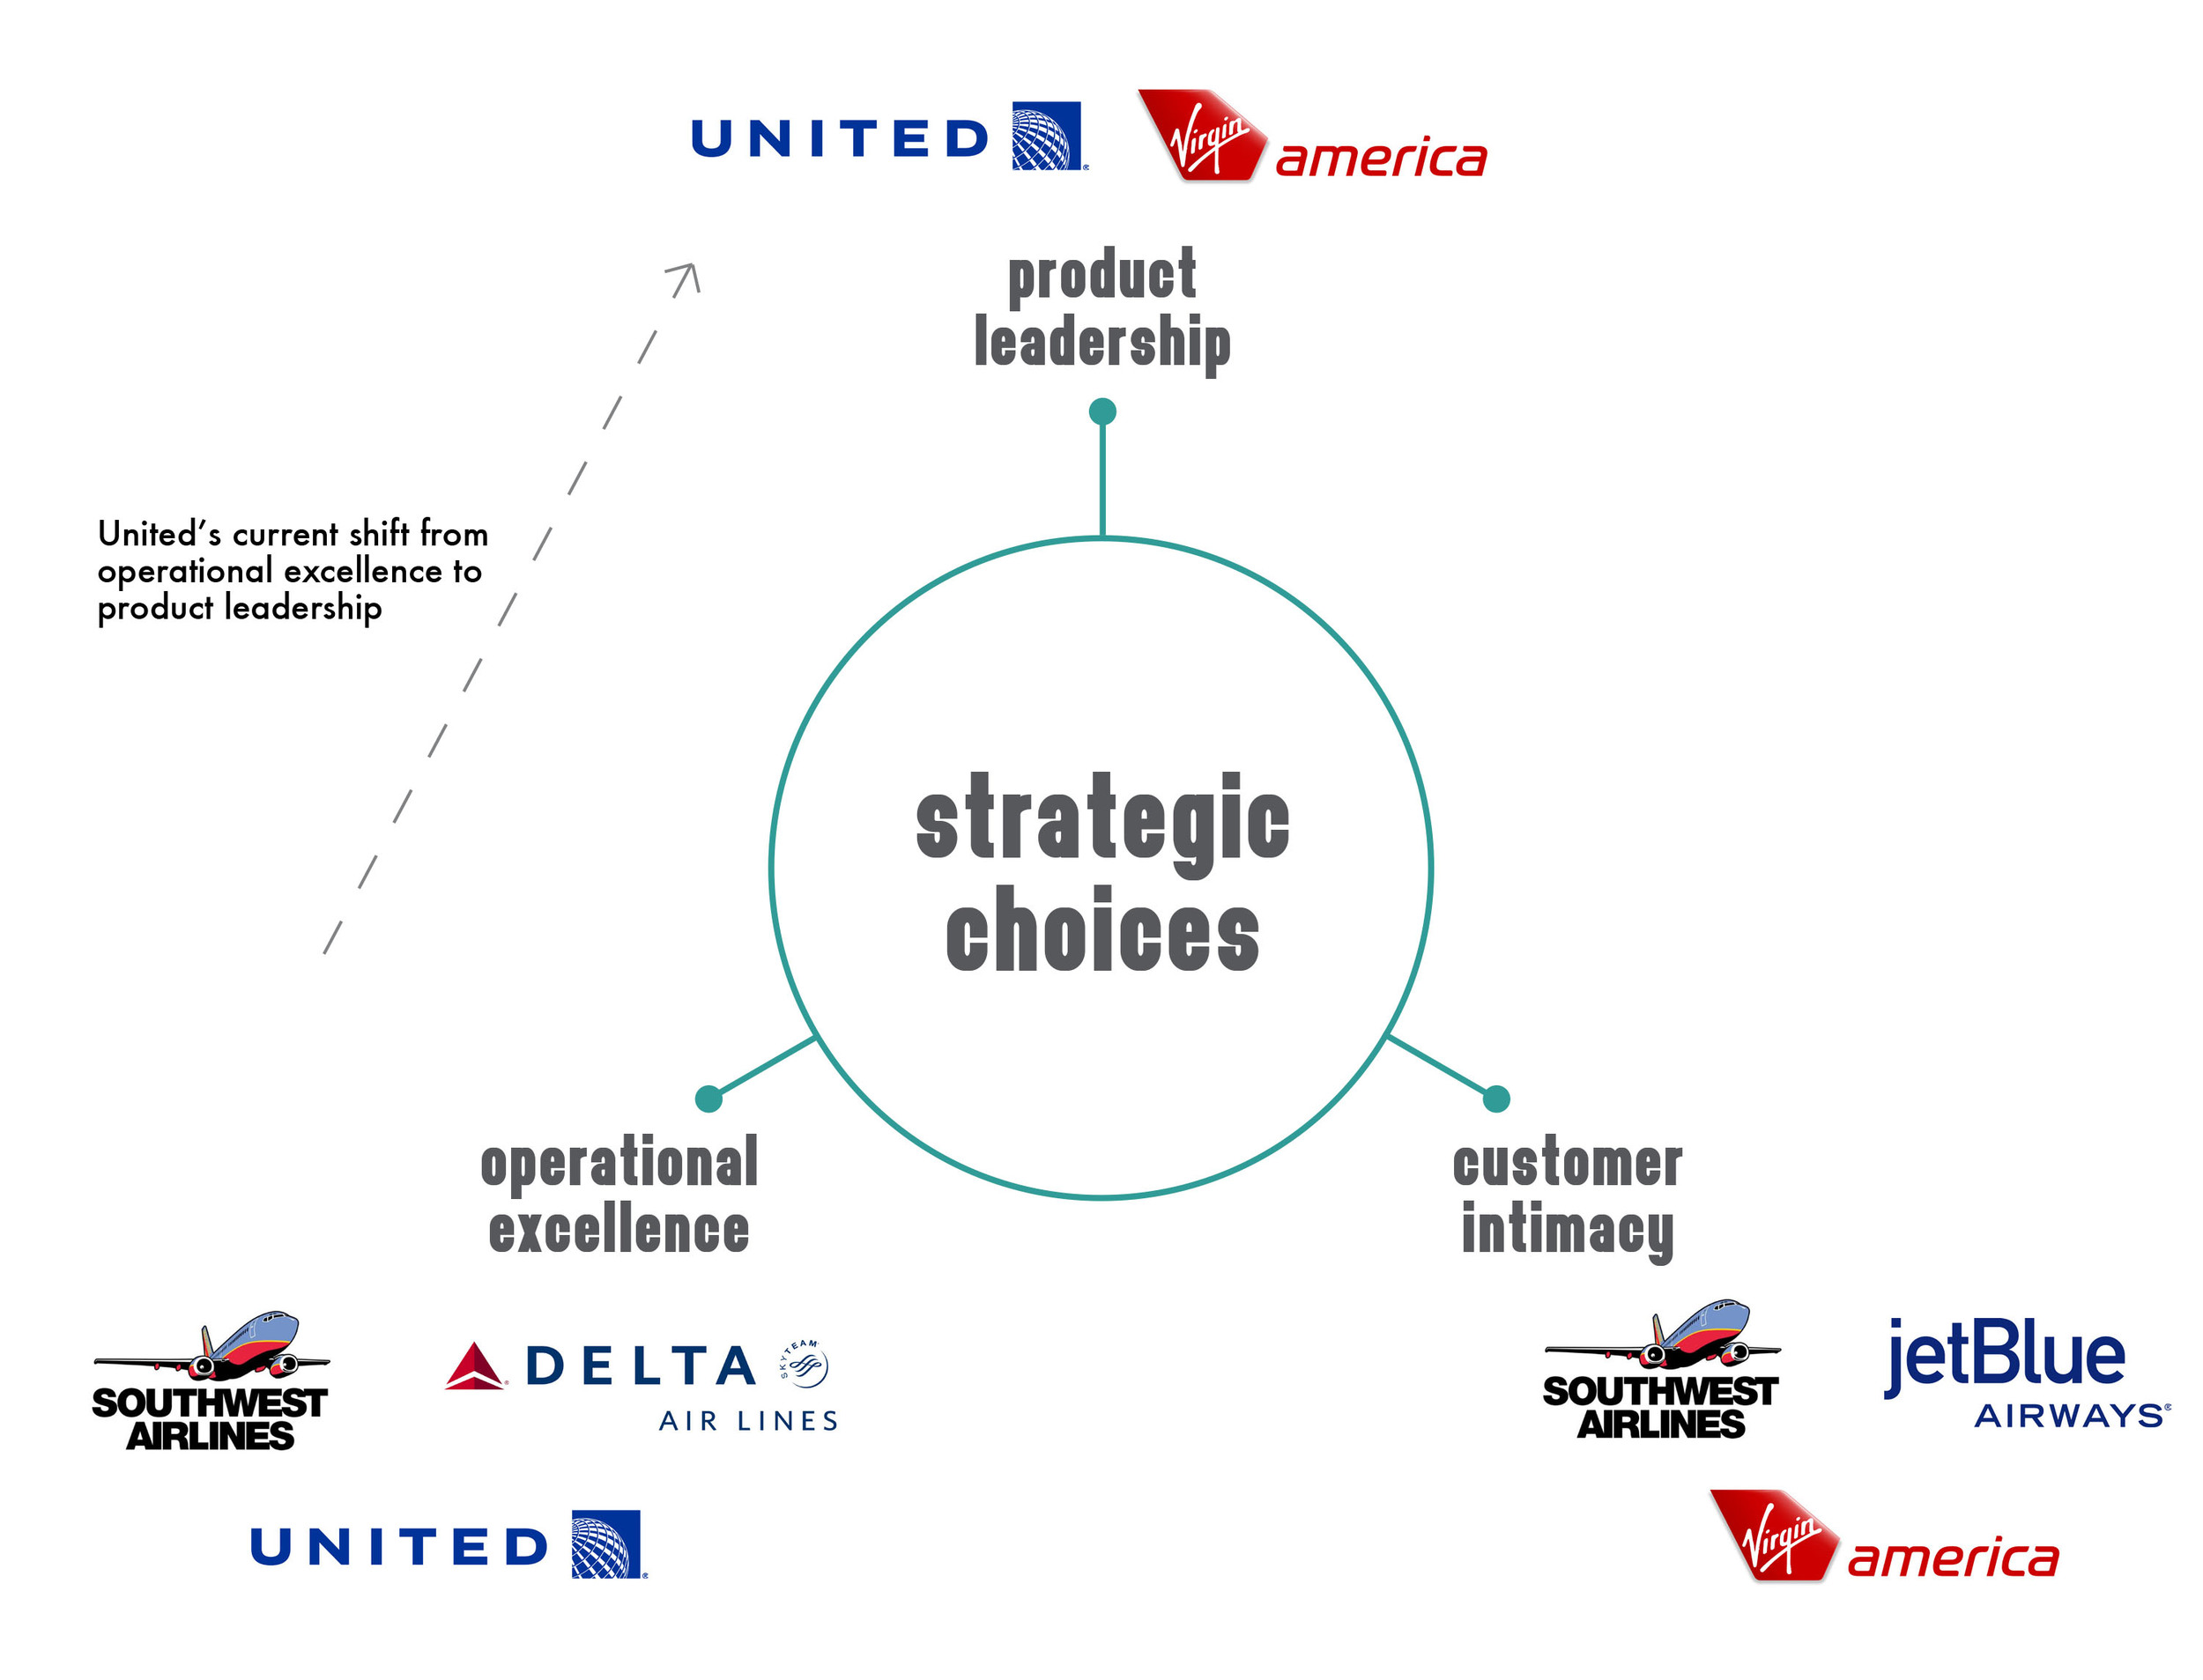 Overview of what airlines in america are striving for.